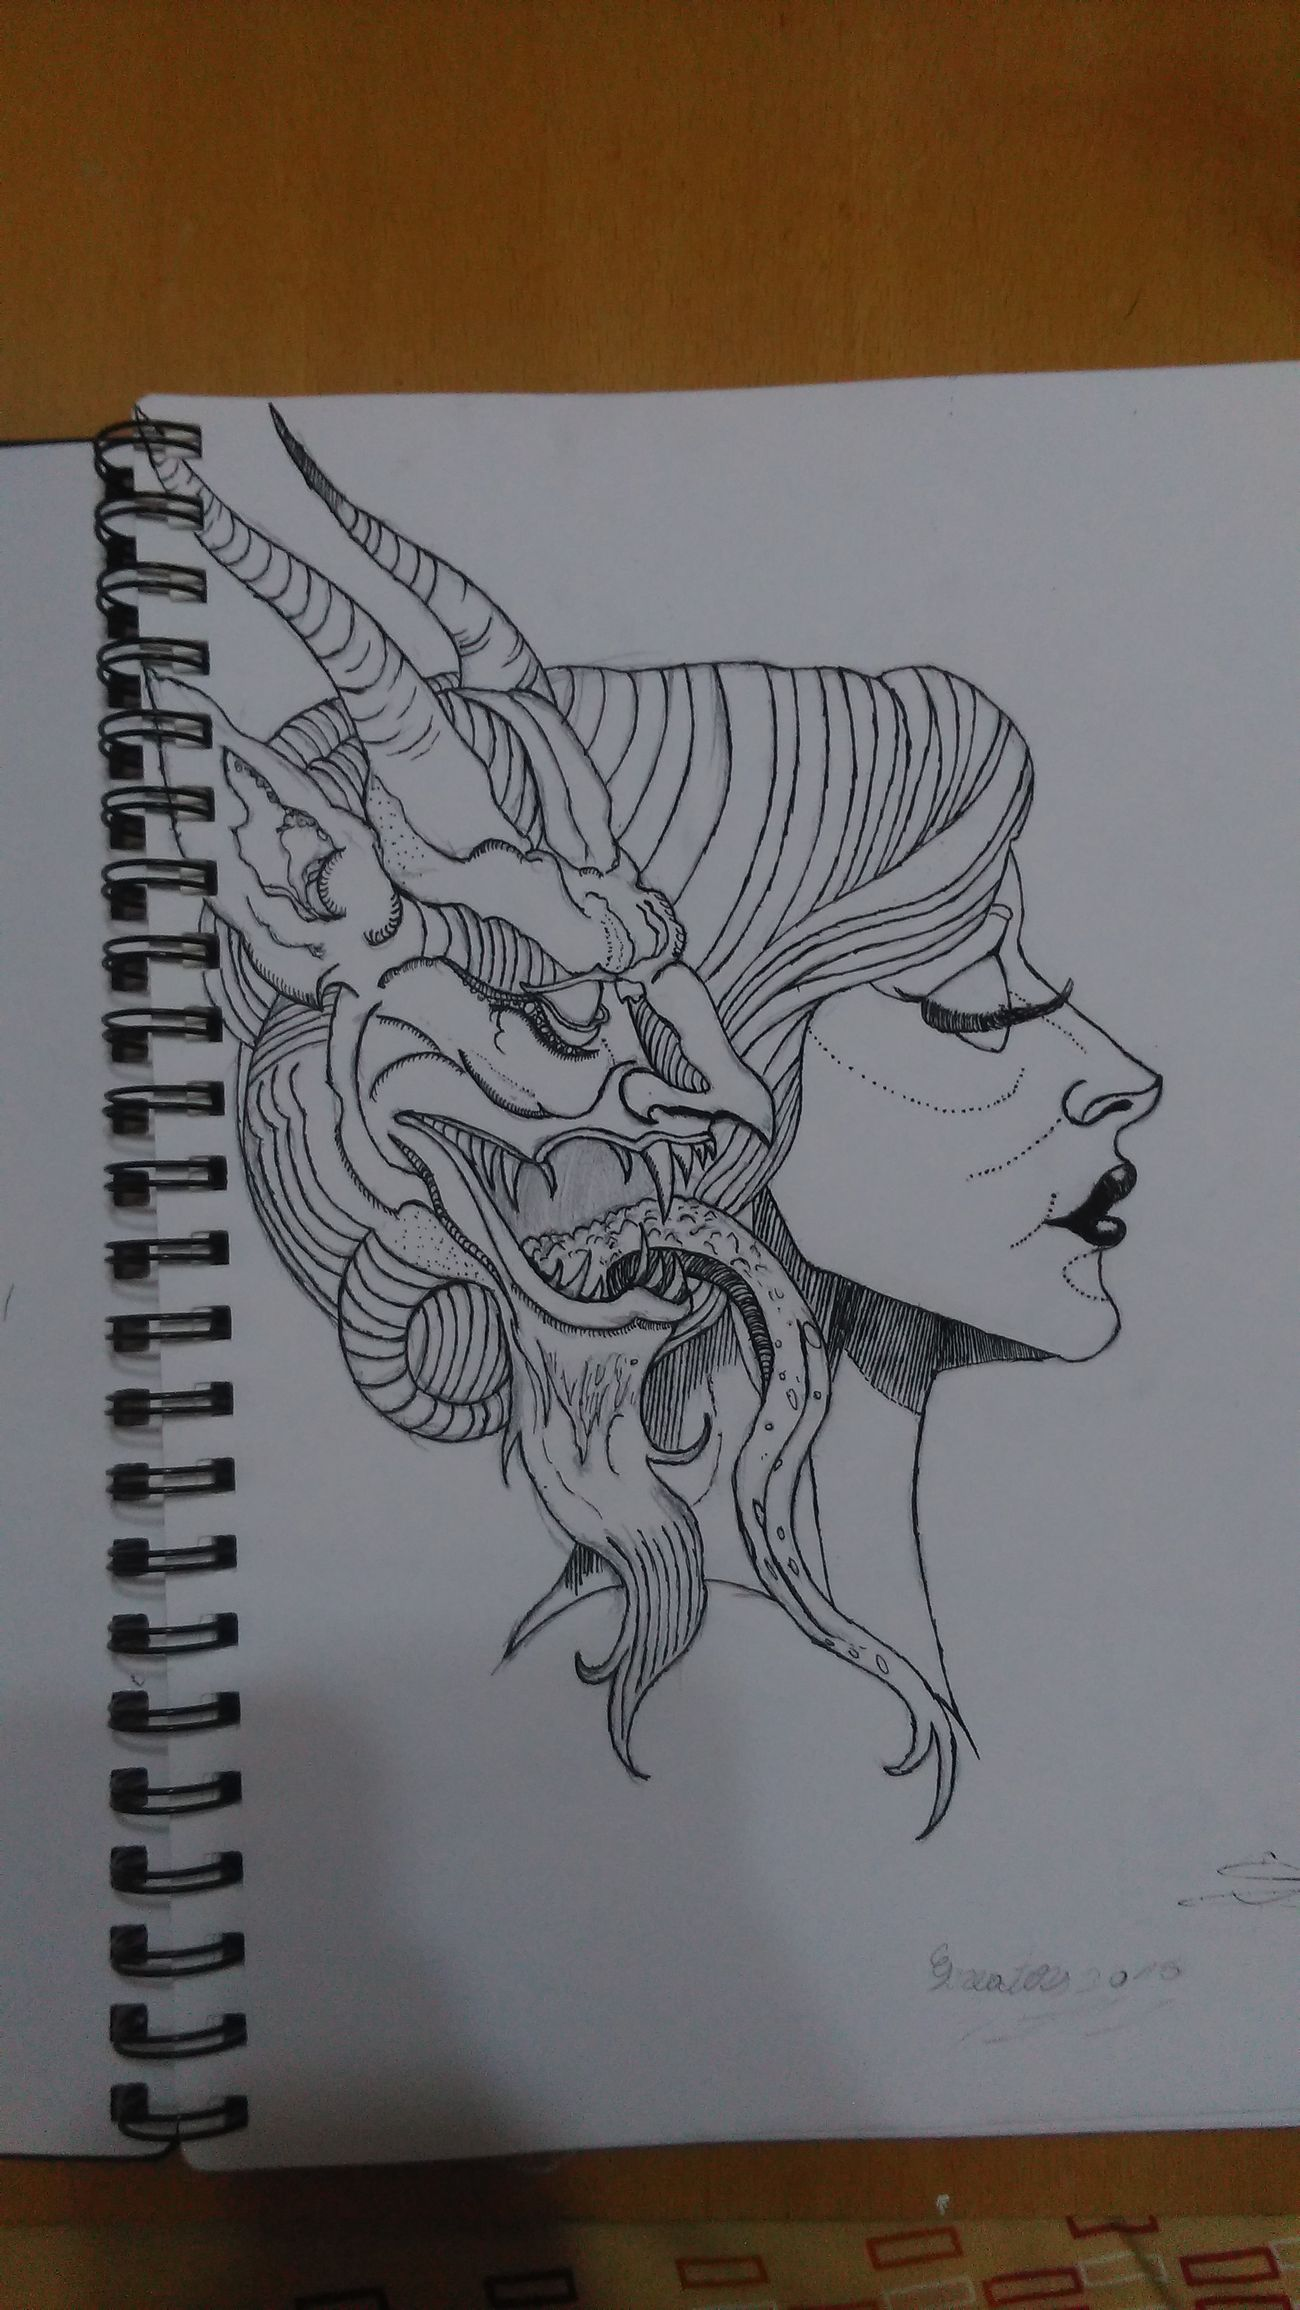 Devil Women Art Drawing Creativity Drawingwork Creativity Drawing - Art Product Art, Drawing, Creativity ArtWork Hand Drawing Composition Paper